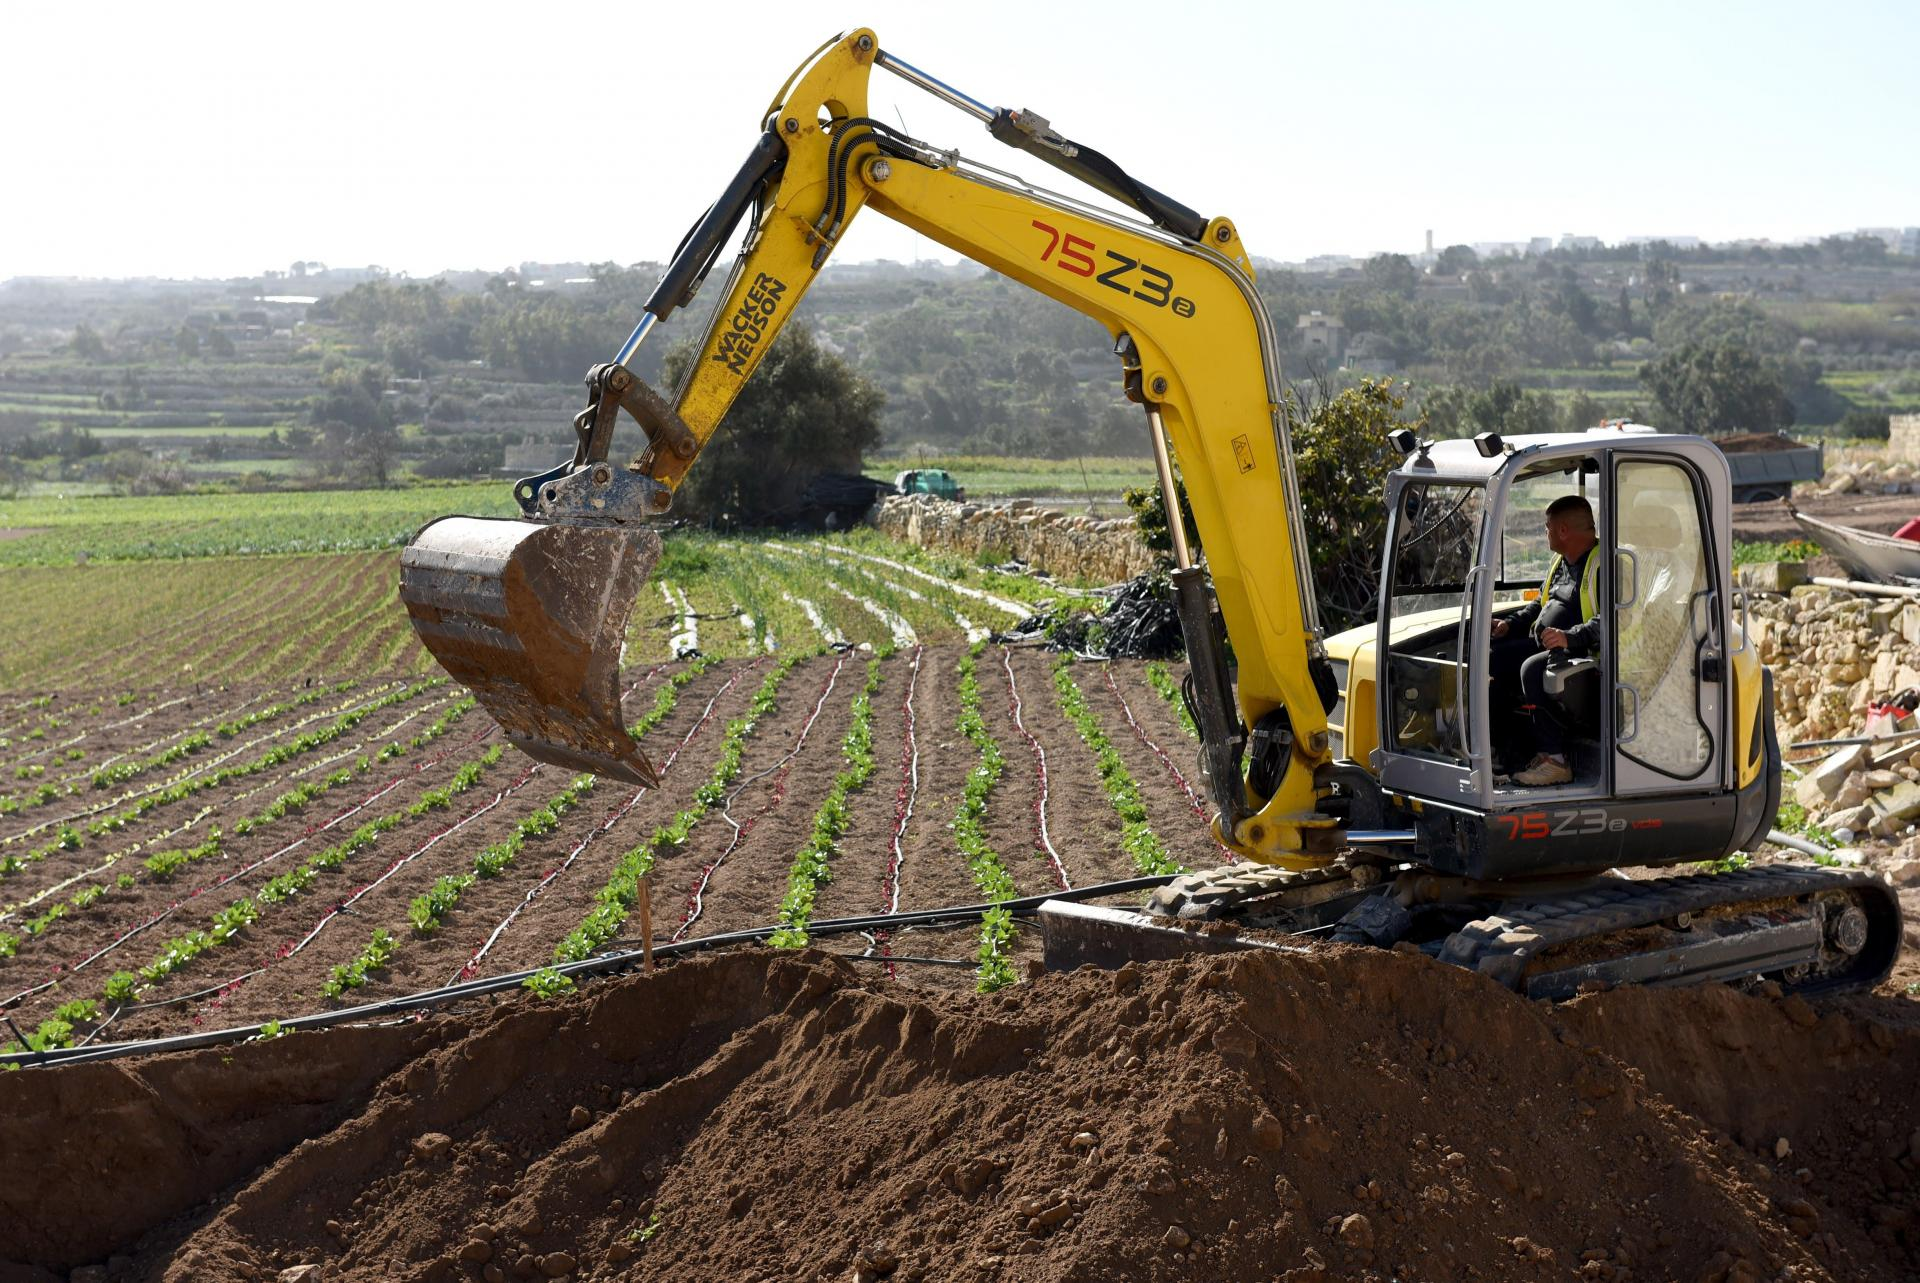 An excavator digs up farmland to make way for a wider road. Photo: Chris Sant Fournier